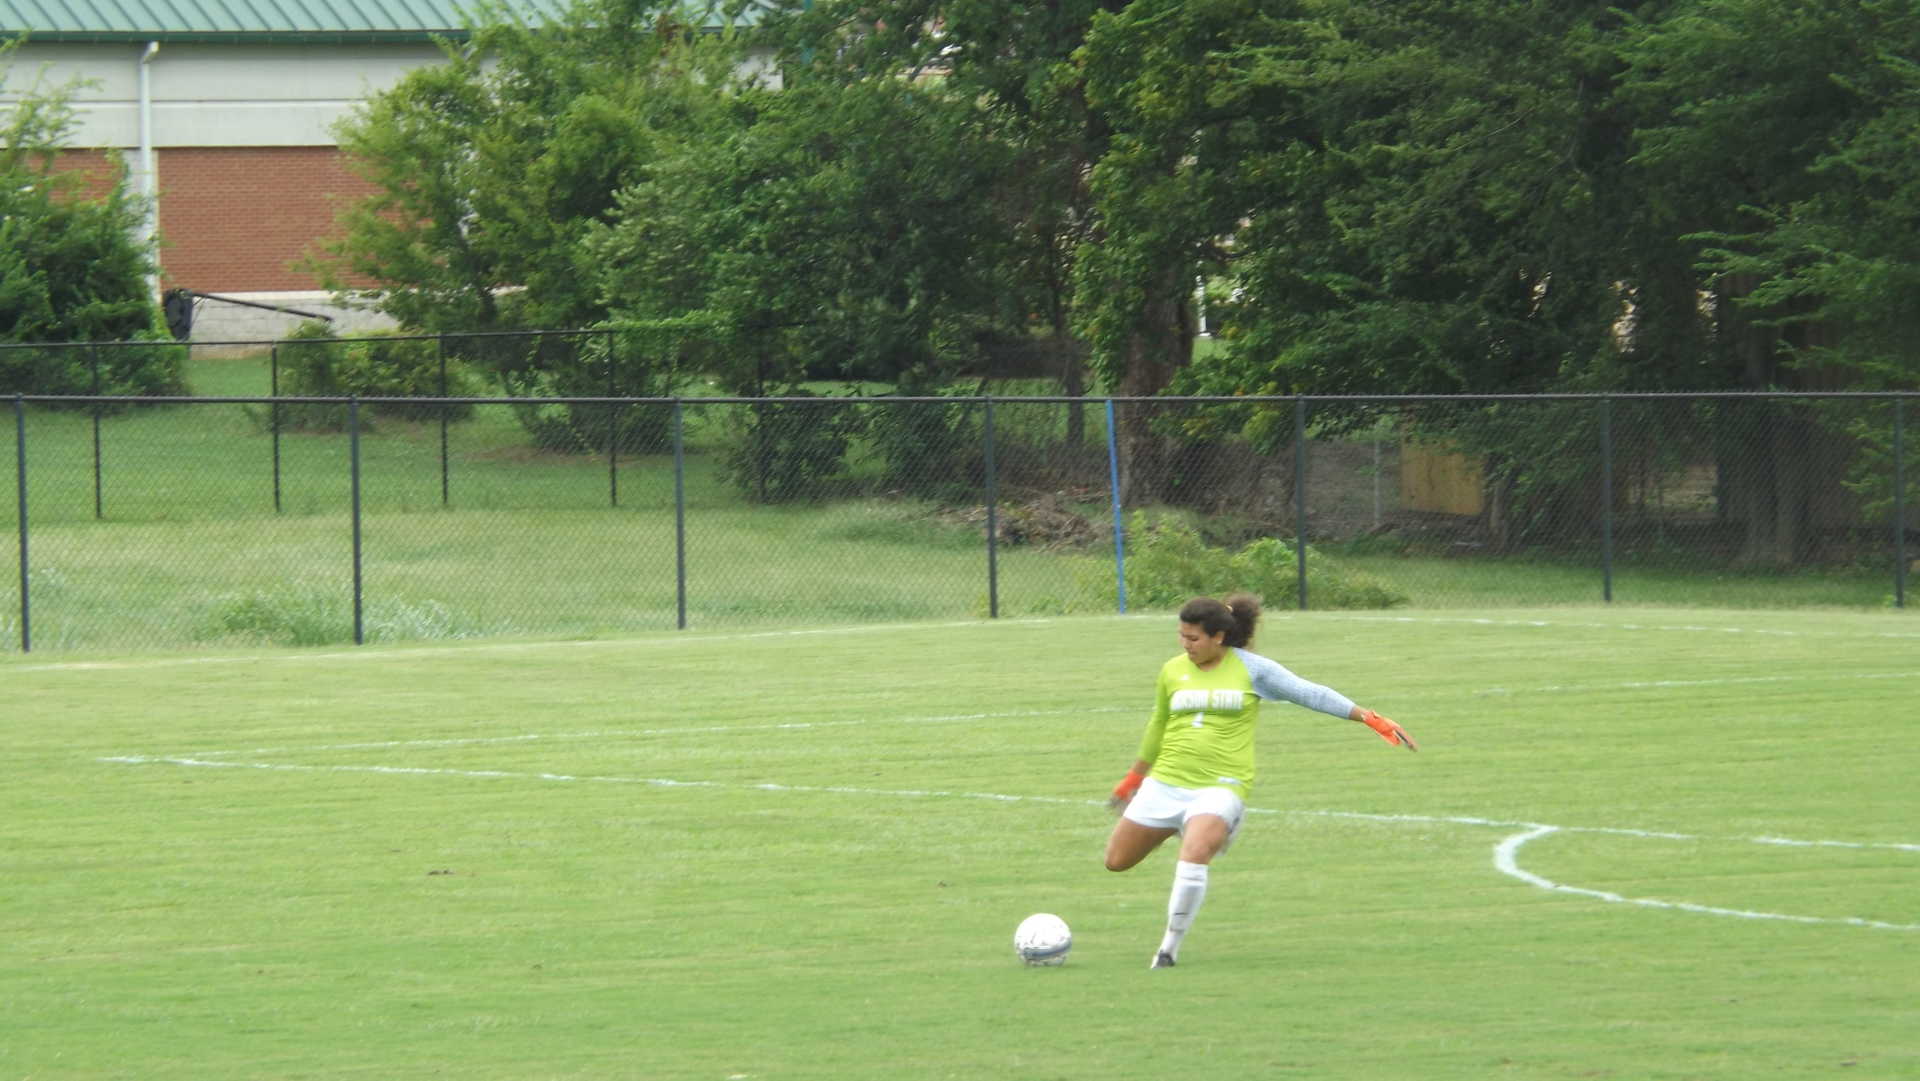 SOC -Aug. 25: Soccer falls 6-2 to Middle Tennesseer